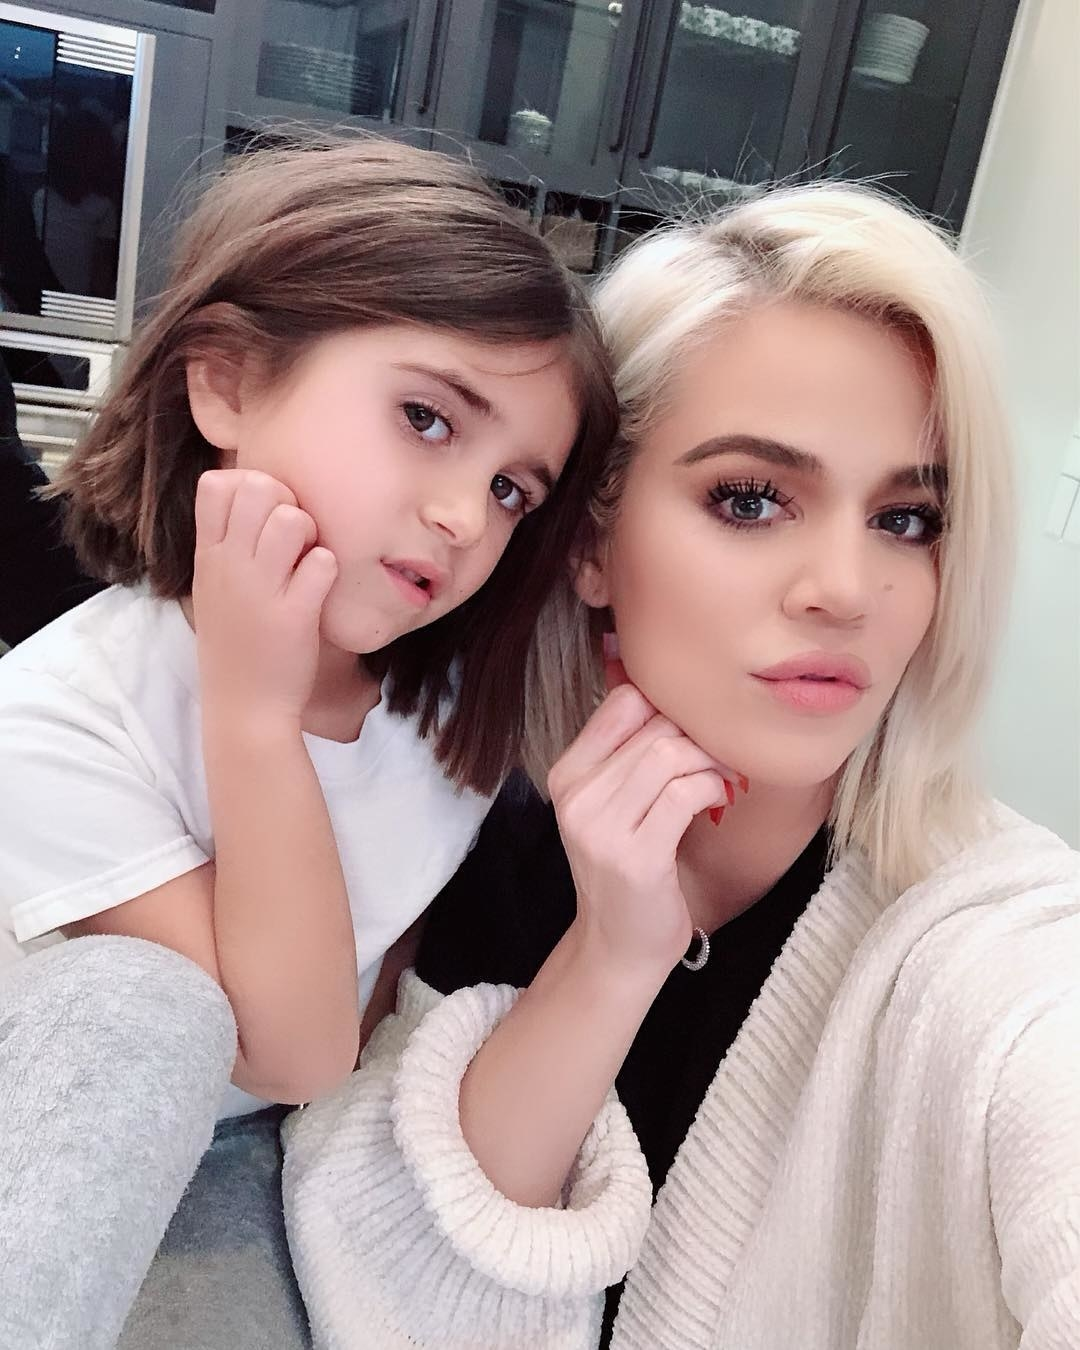 Khloé Kardashian and her niece, Penelope Disick, were twinning with their bobs and poses.